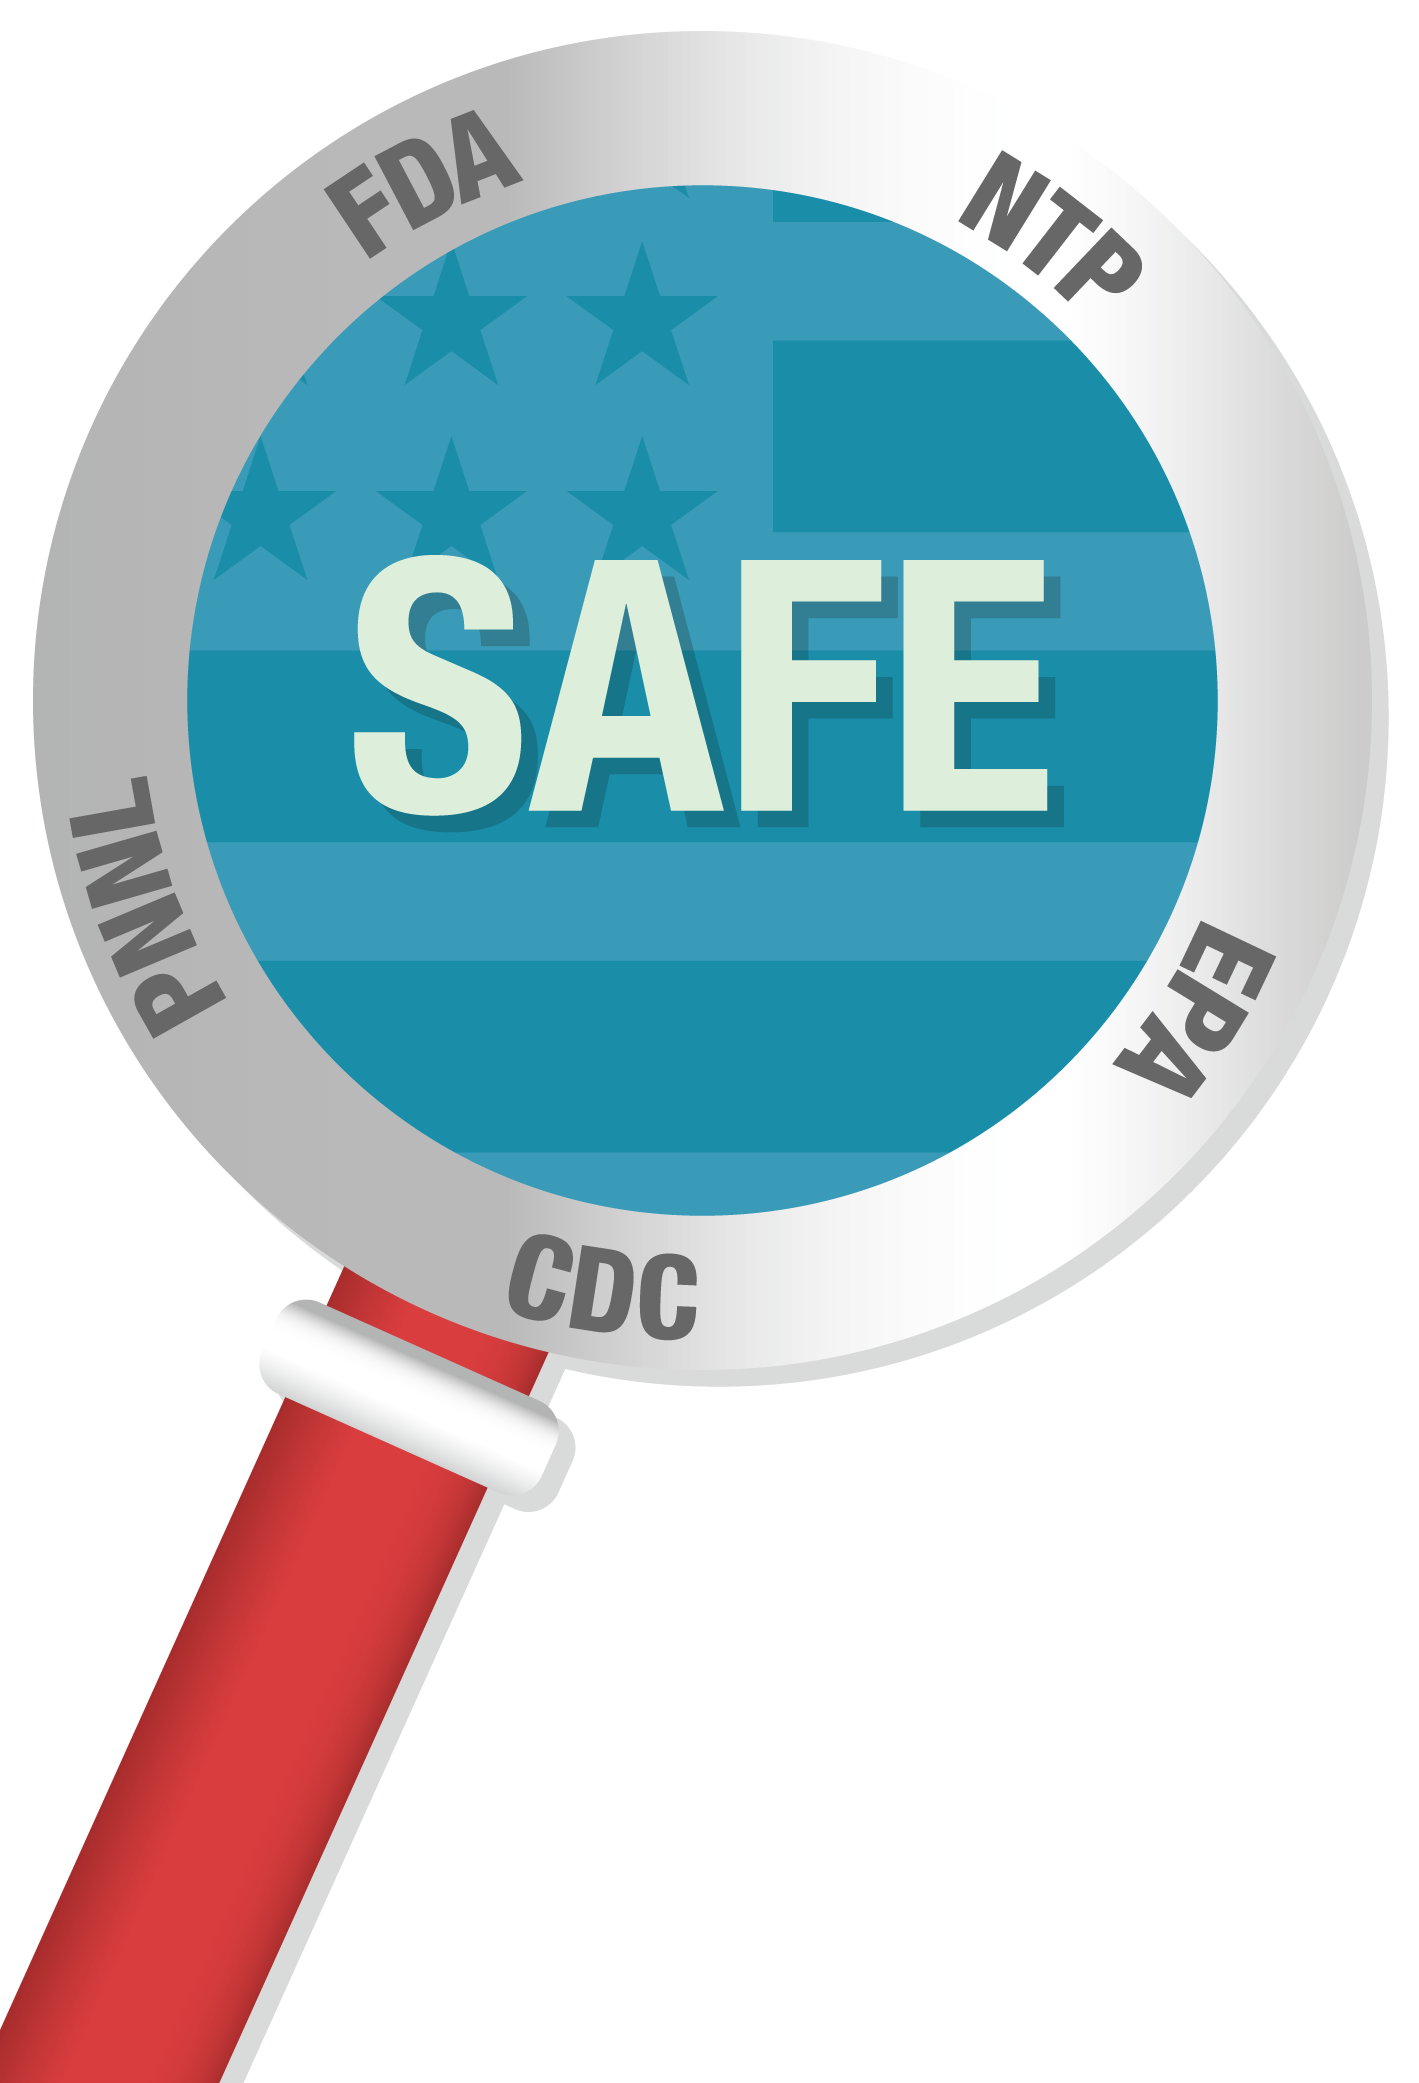 A magnifying glass labeled with the names of U.S. government agencies, including the FDA, CDC, EPA, NTP and PNNL demonstrates all the government agencies that have found BPA is safe., Safe Exposure Limits: A consumer would have to ingest 1,300 pounds of food and beverages in contact with polycarbonate plastic every day to exceed the safe level of BPA set by U.S. government agencies., Silhoutte of human body showing the average consumer's intake of BPA is 2.4 micrograms per day, A plate of food suggests consumers are often exposed to low levels of BPA through food and beverages, A clock represents the fact that the human body metabolizes and eliminates BPA within 24 hours, Microscope with words, No BPA Detected shows no active BPA could be detected after 24 hours, A family represents the idea that consumers of all ages can metabolize BPA, Safe Exposure Limits: Consumer exposure to BPA 1,000 times below safe limit,Laboratory vials with a dropper represent government researchers' toxicity study of BPA, A woman smiling represents the idea that consumers should be confident that science has shown BPA is very unlikely to cause health effects